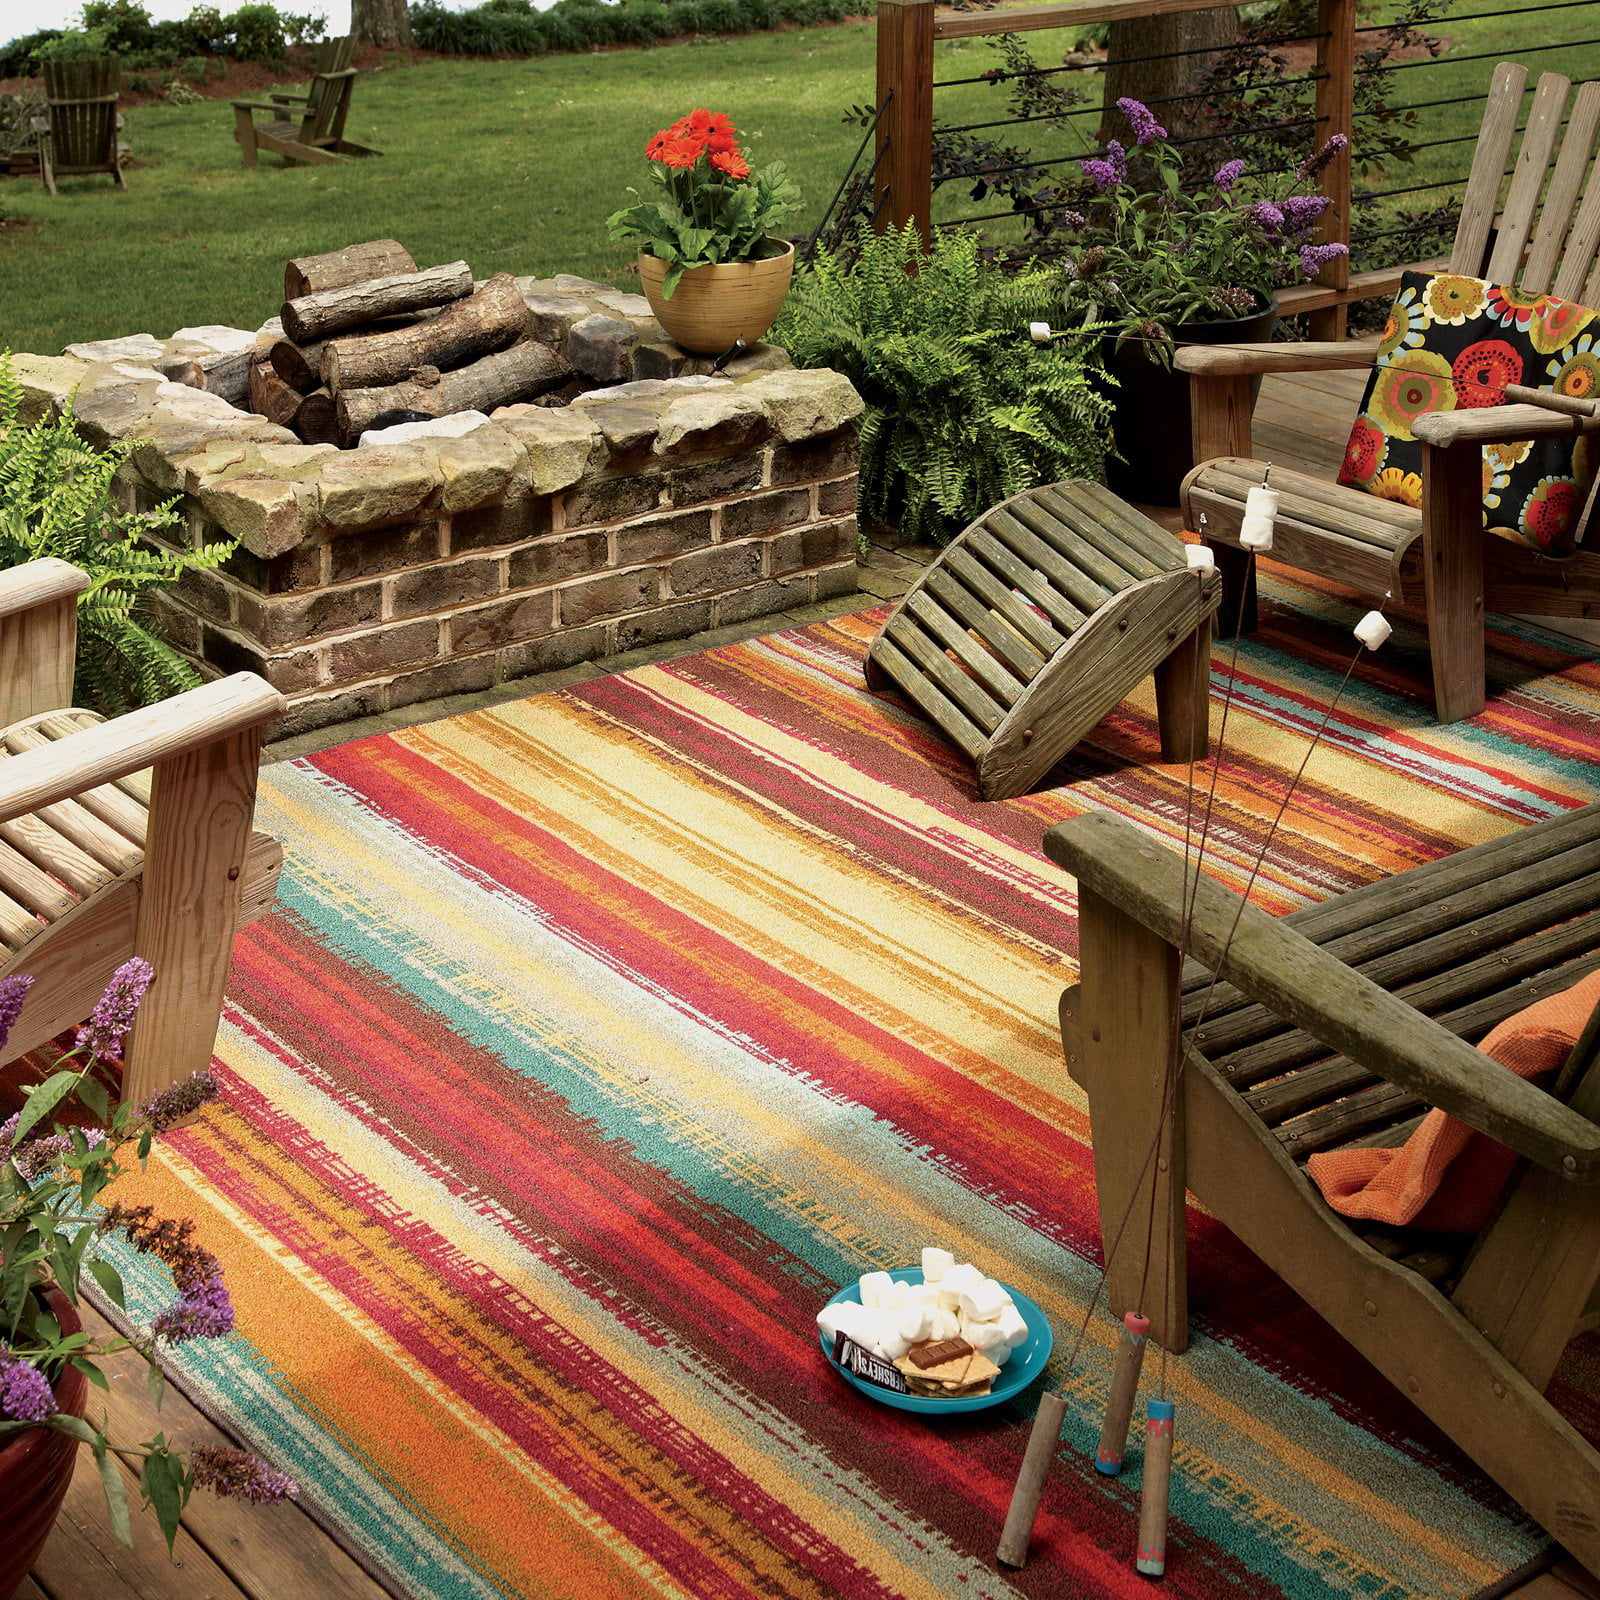 Mohawk Home Avenue Stripe Indoor/Outdoor Nylon Rug, Multi Colored    Walmart.com